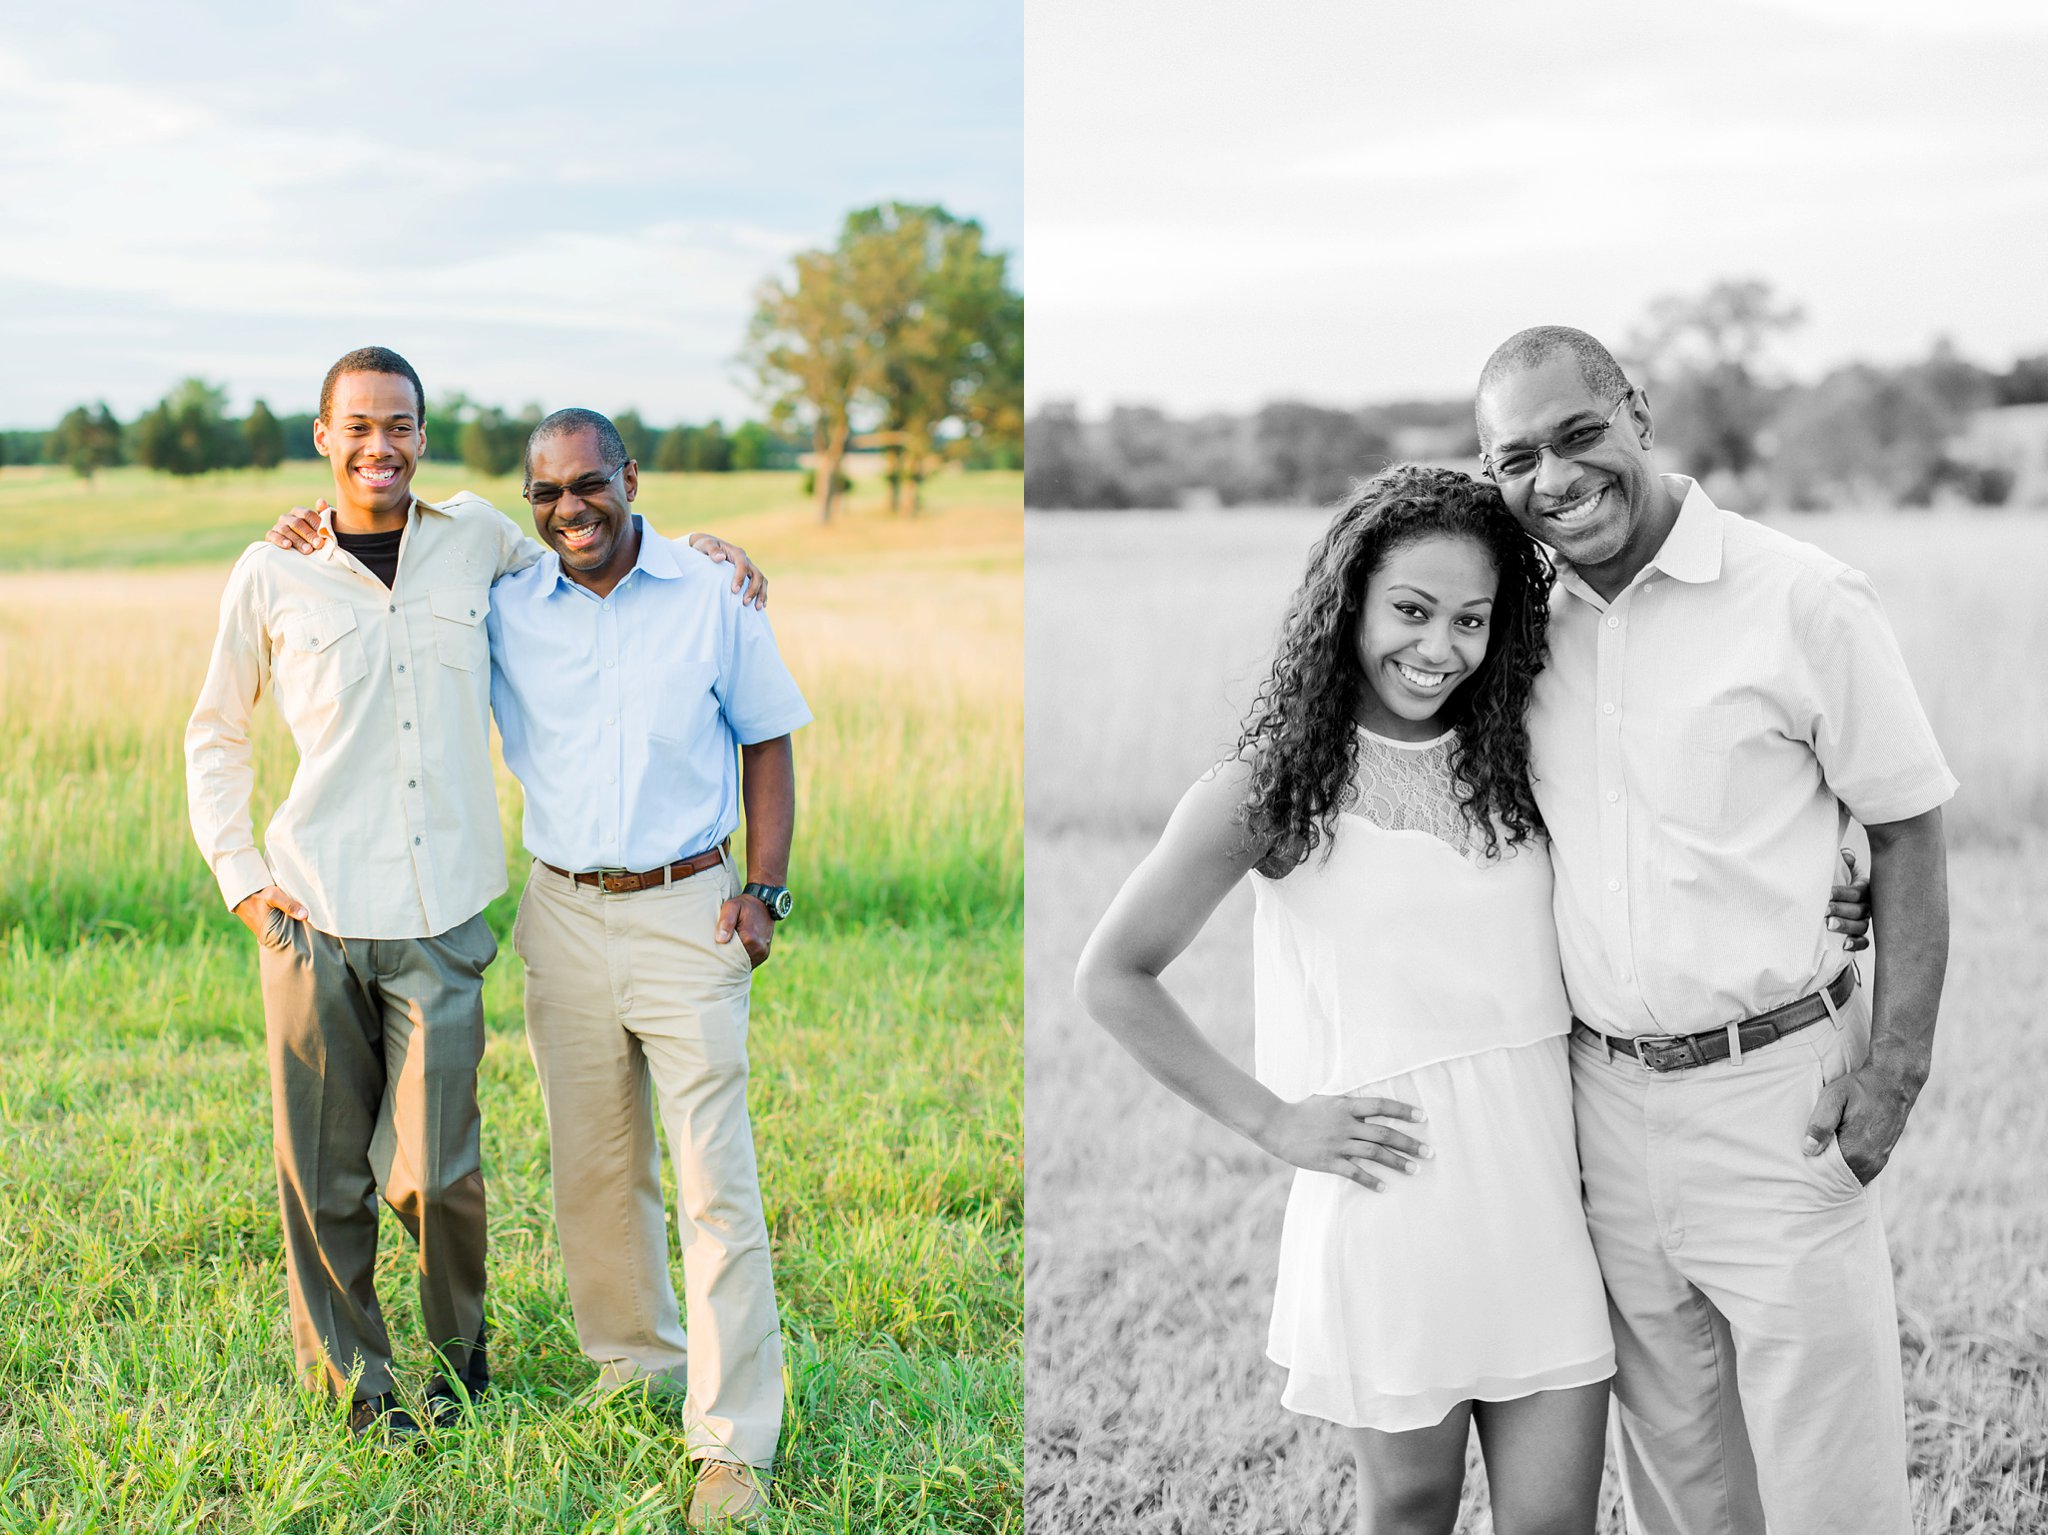 Manassas Battlefield Family Photos Northern Virginia Family Photographer Megan Kelsey Photography-8625.jpg